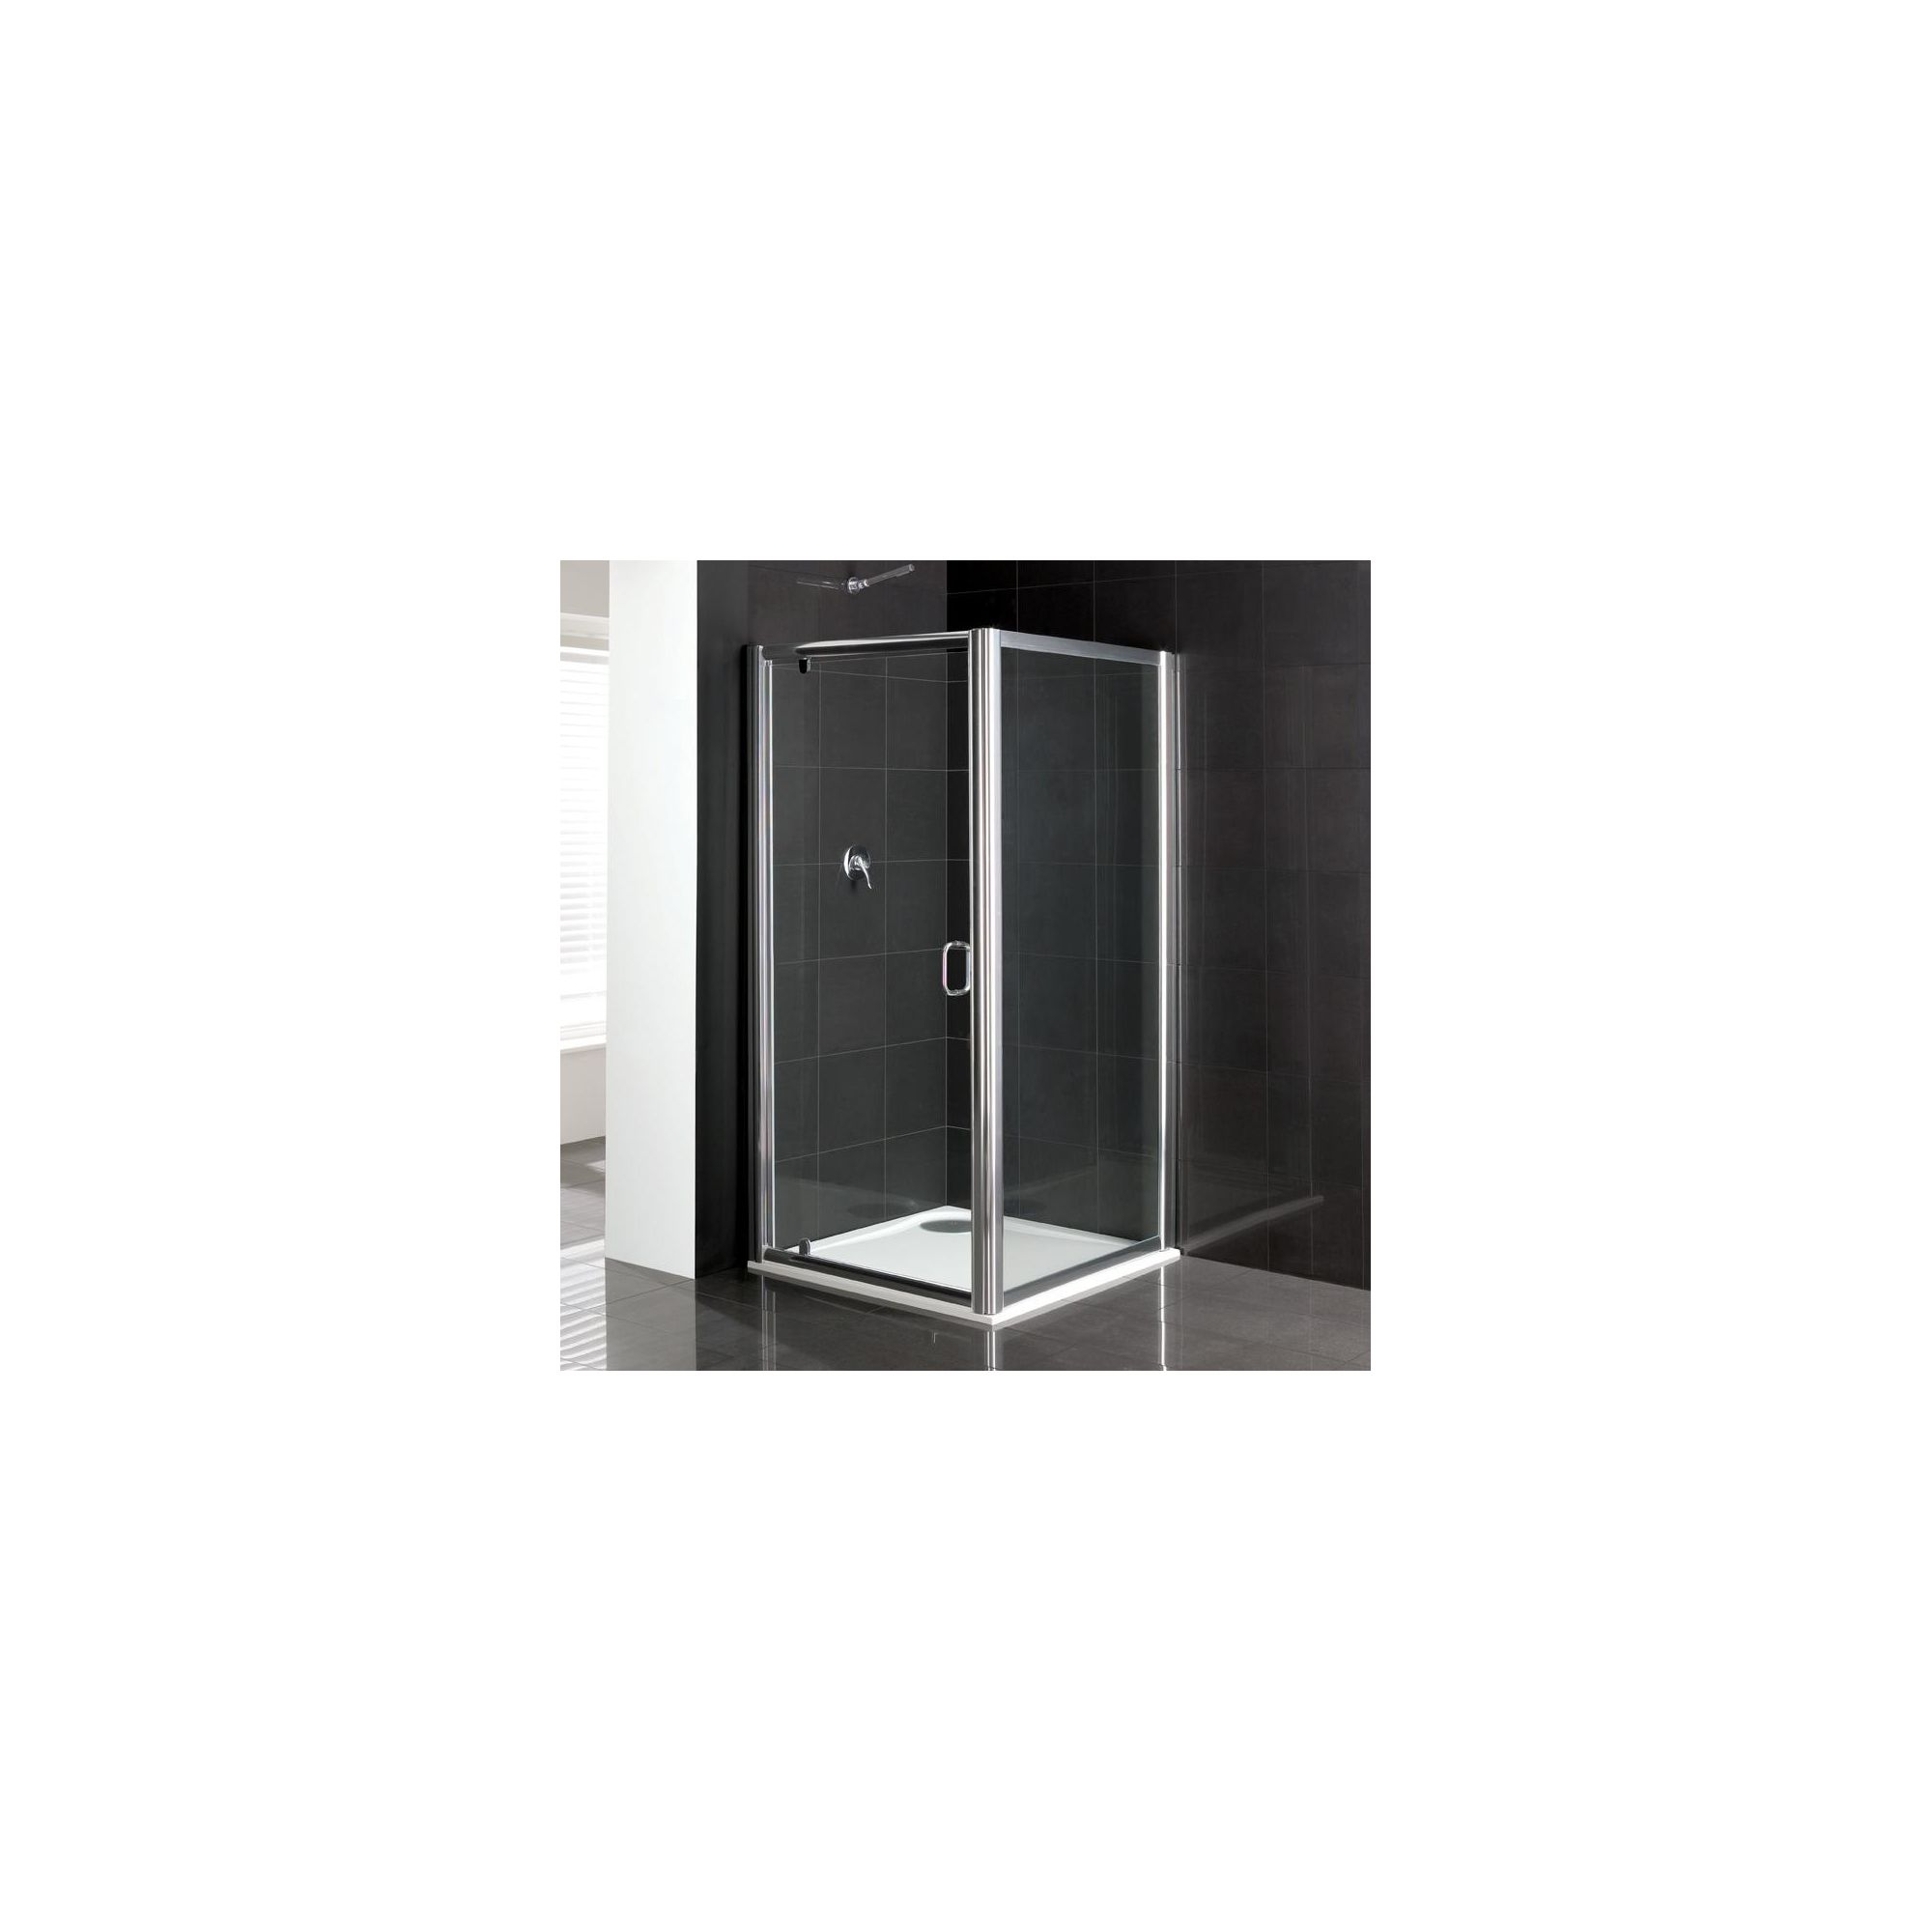 Duchy Elite Silver Pivot Door Shower Enclosure, 760mm x 760mm, Standard Tray, 6mm Glass at Tescos Direct